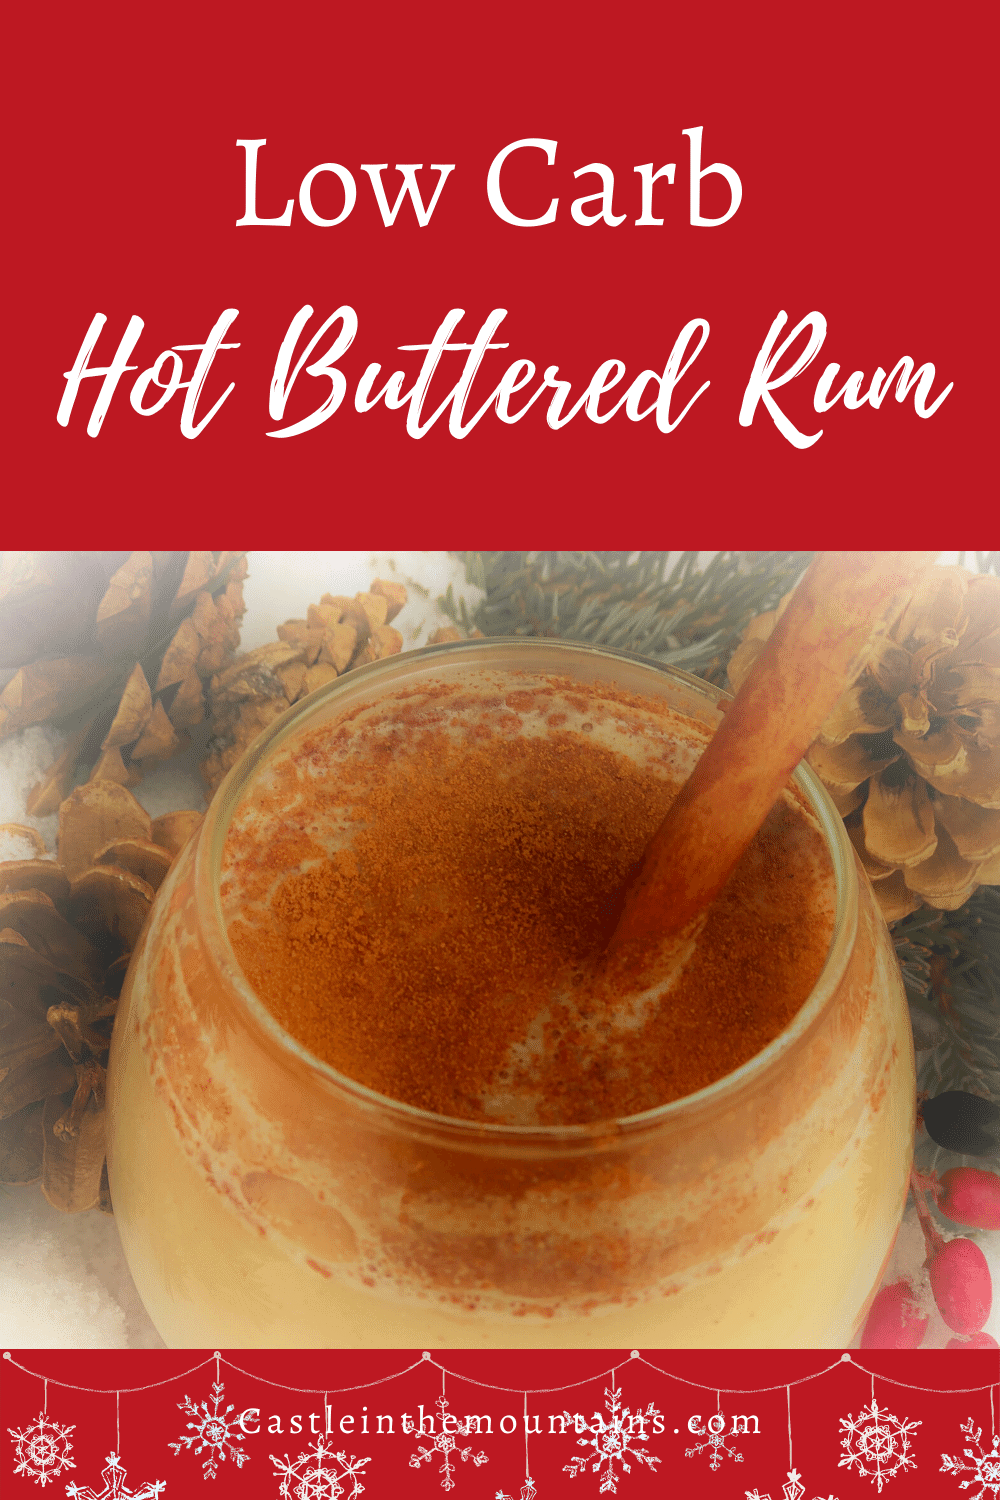 Hot Buttered Rum - How to make Christmas in a Cup!